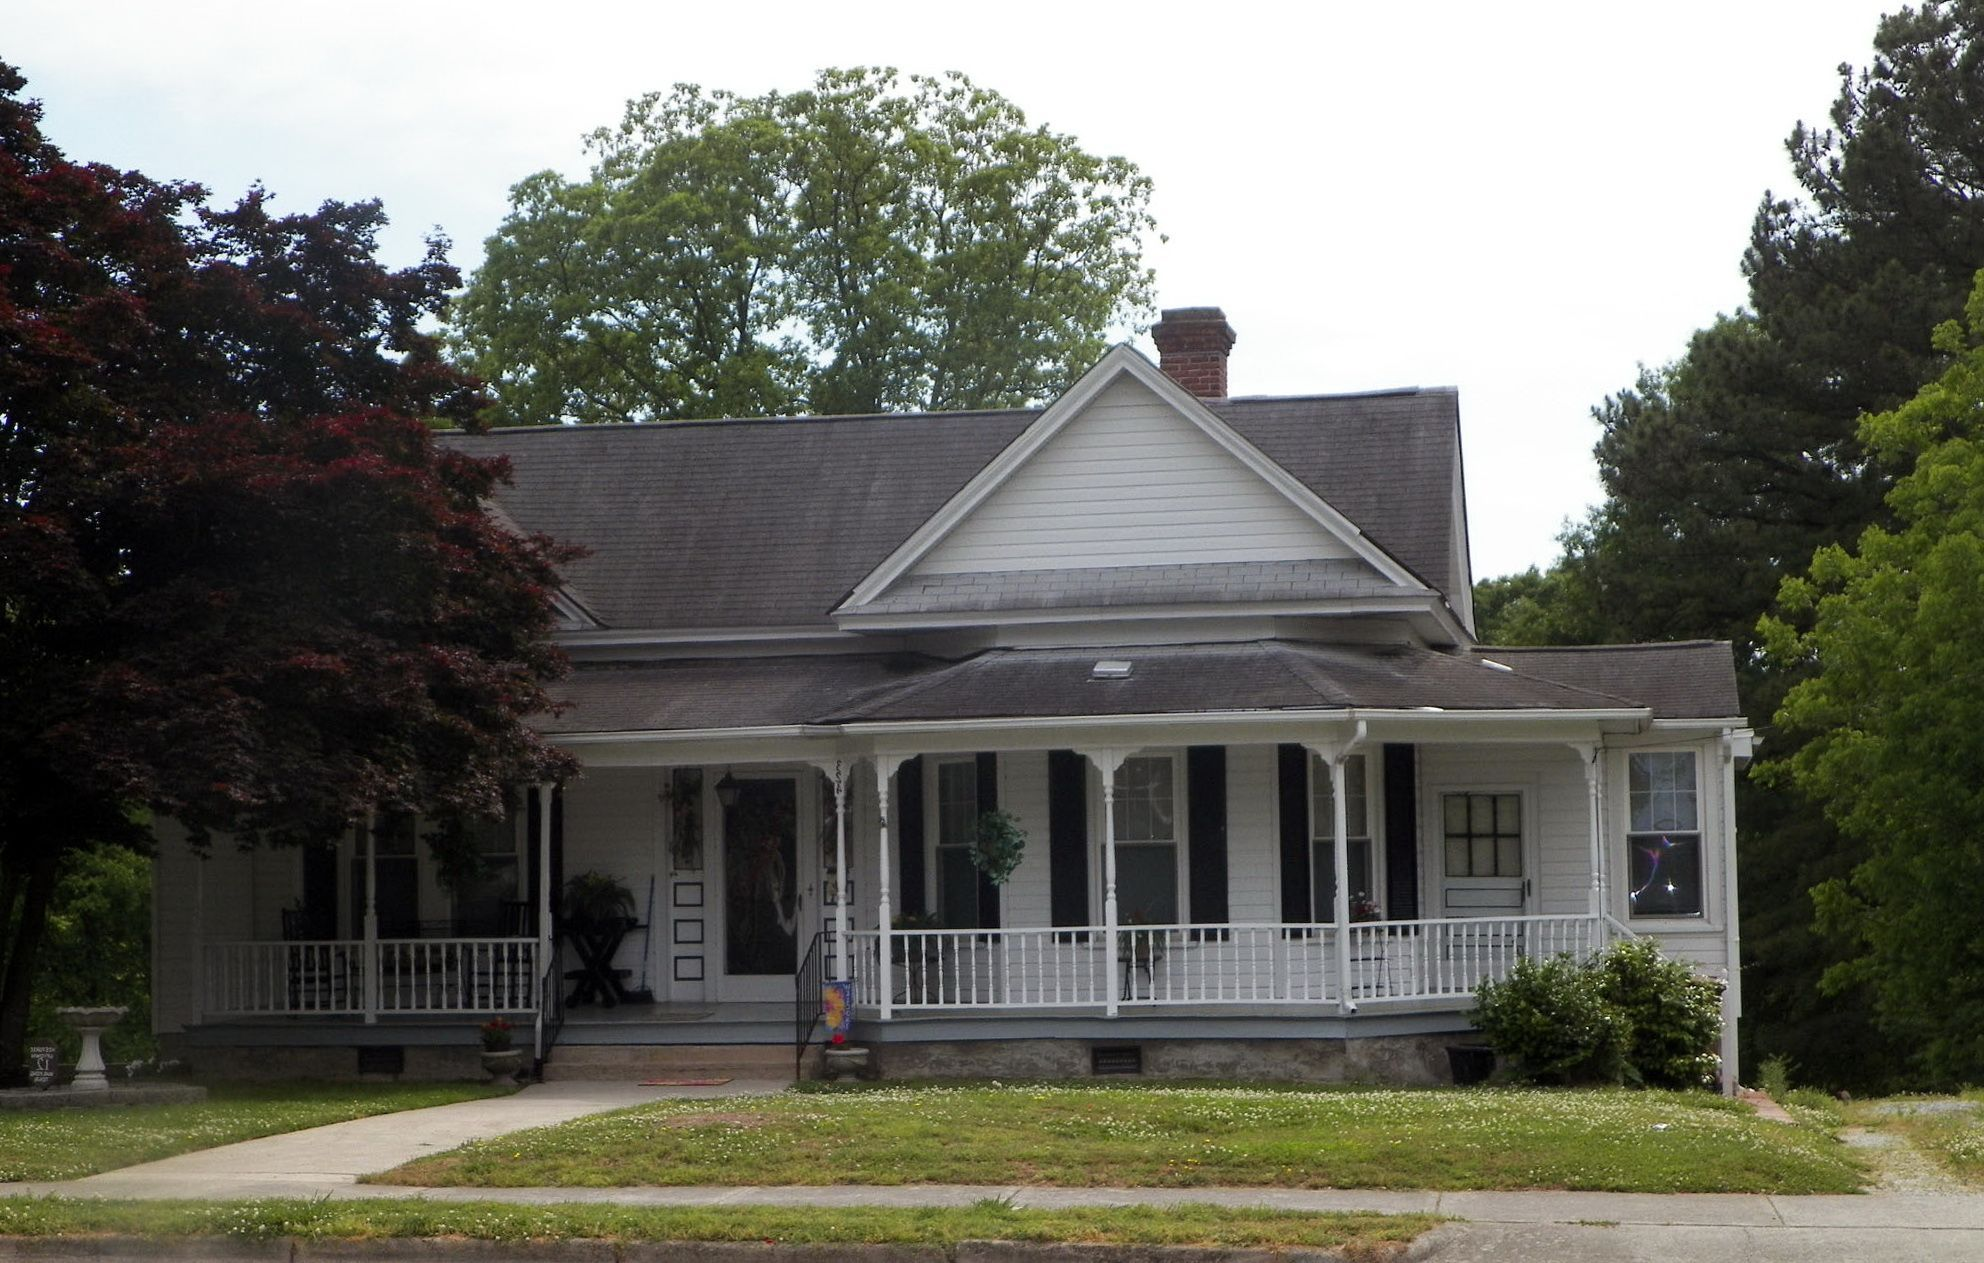 One Story House Plans with Porch Decorative